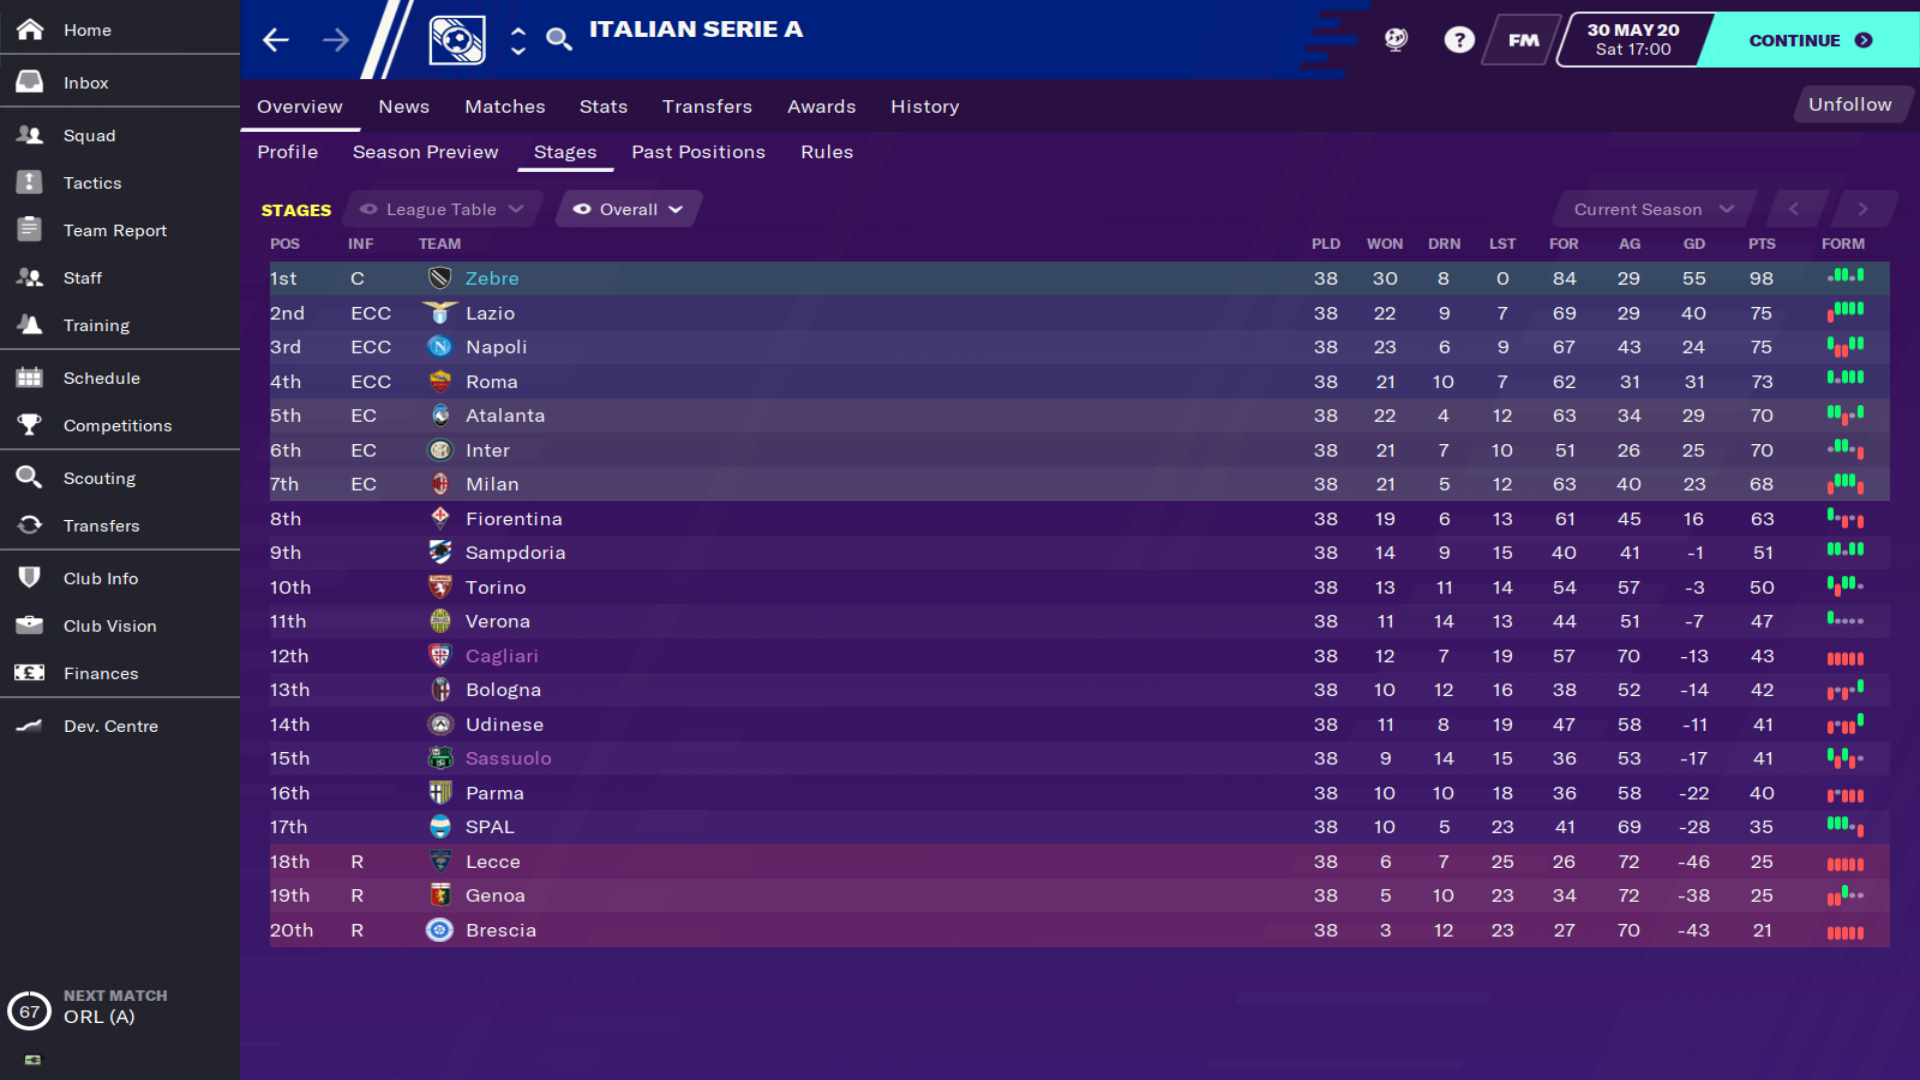 lt serie a.png